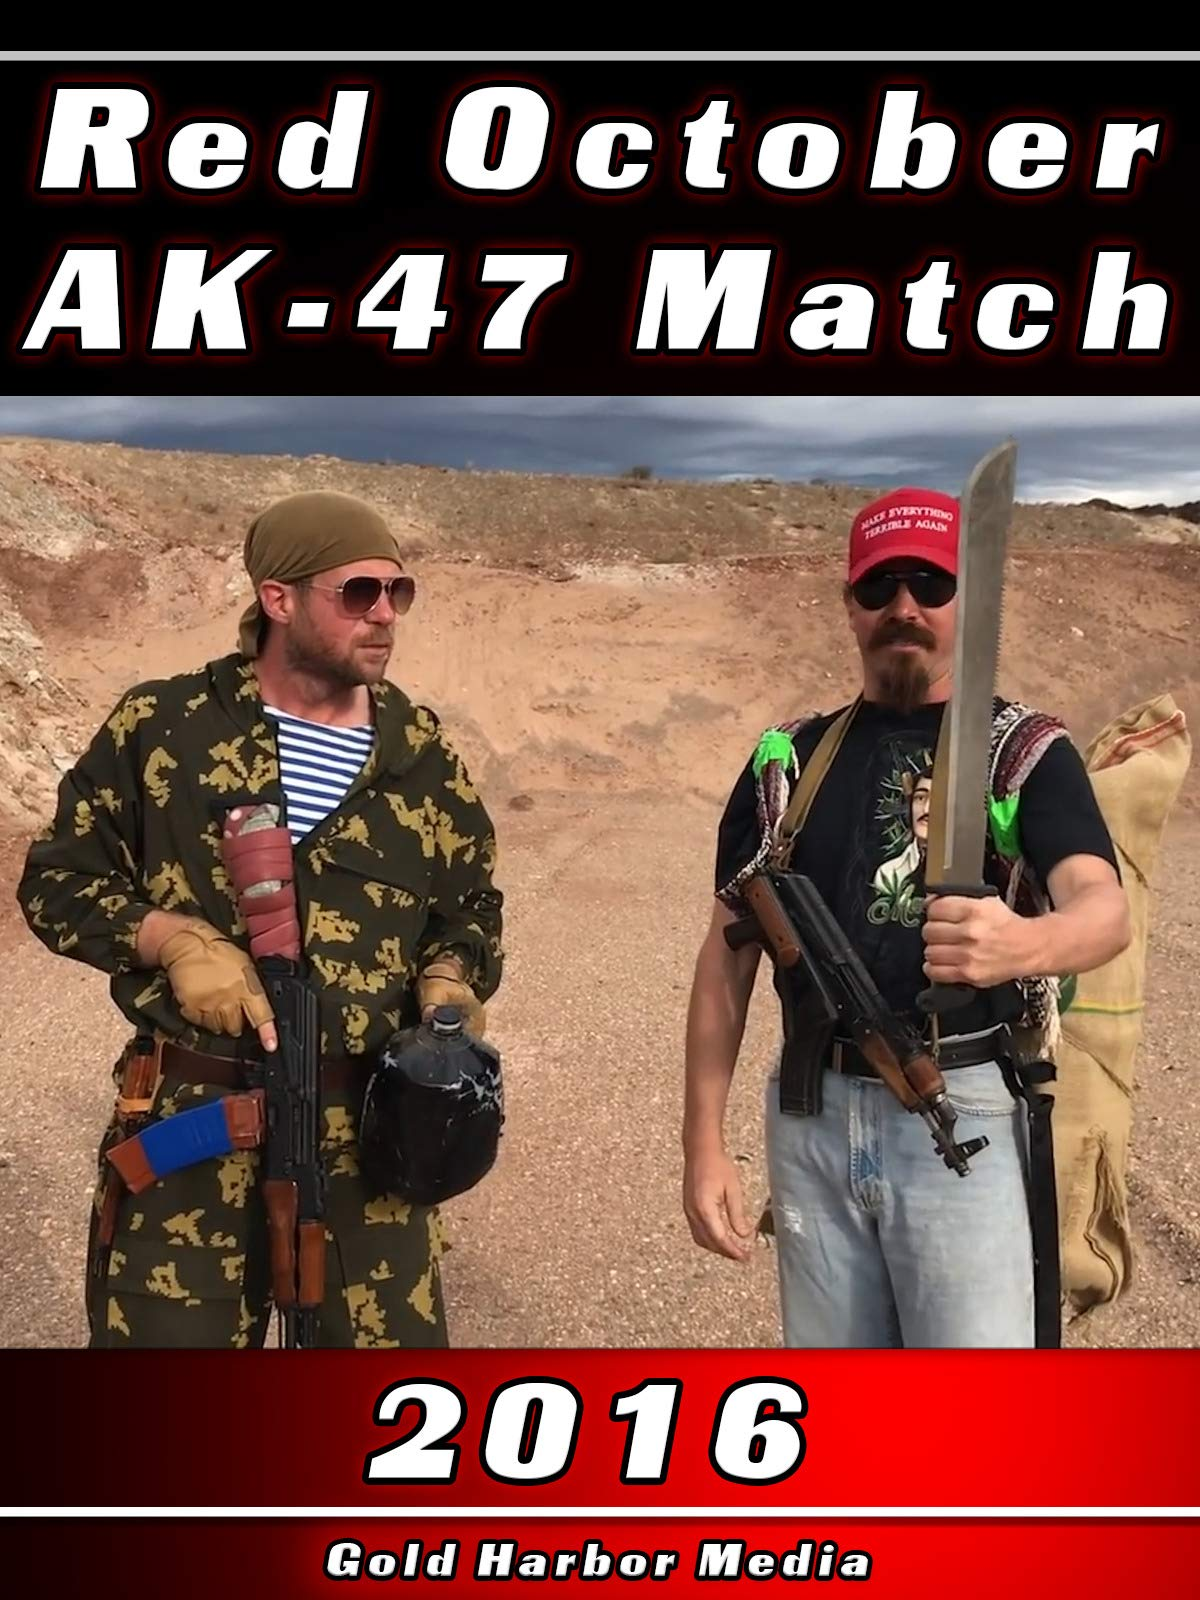 Red October AK-47 Match 2016